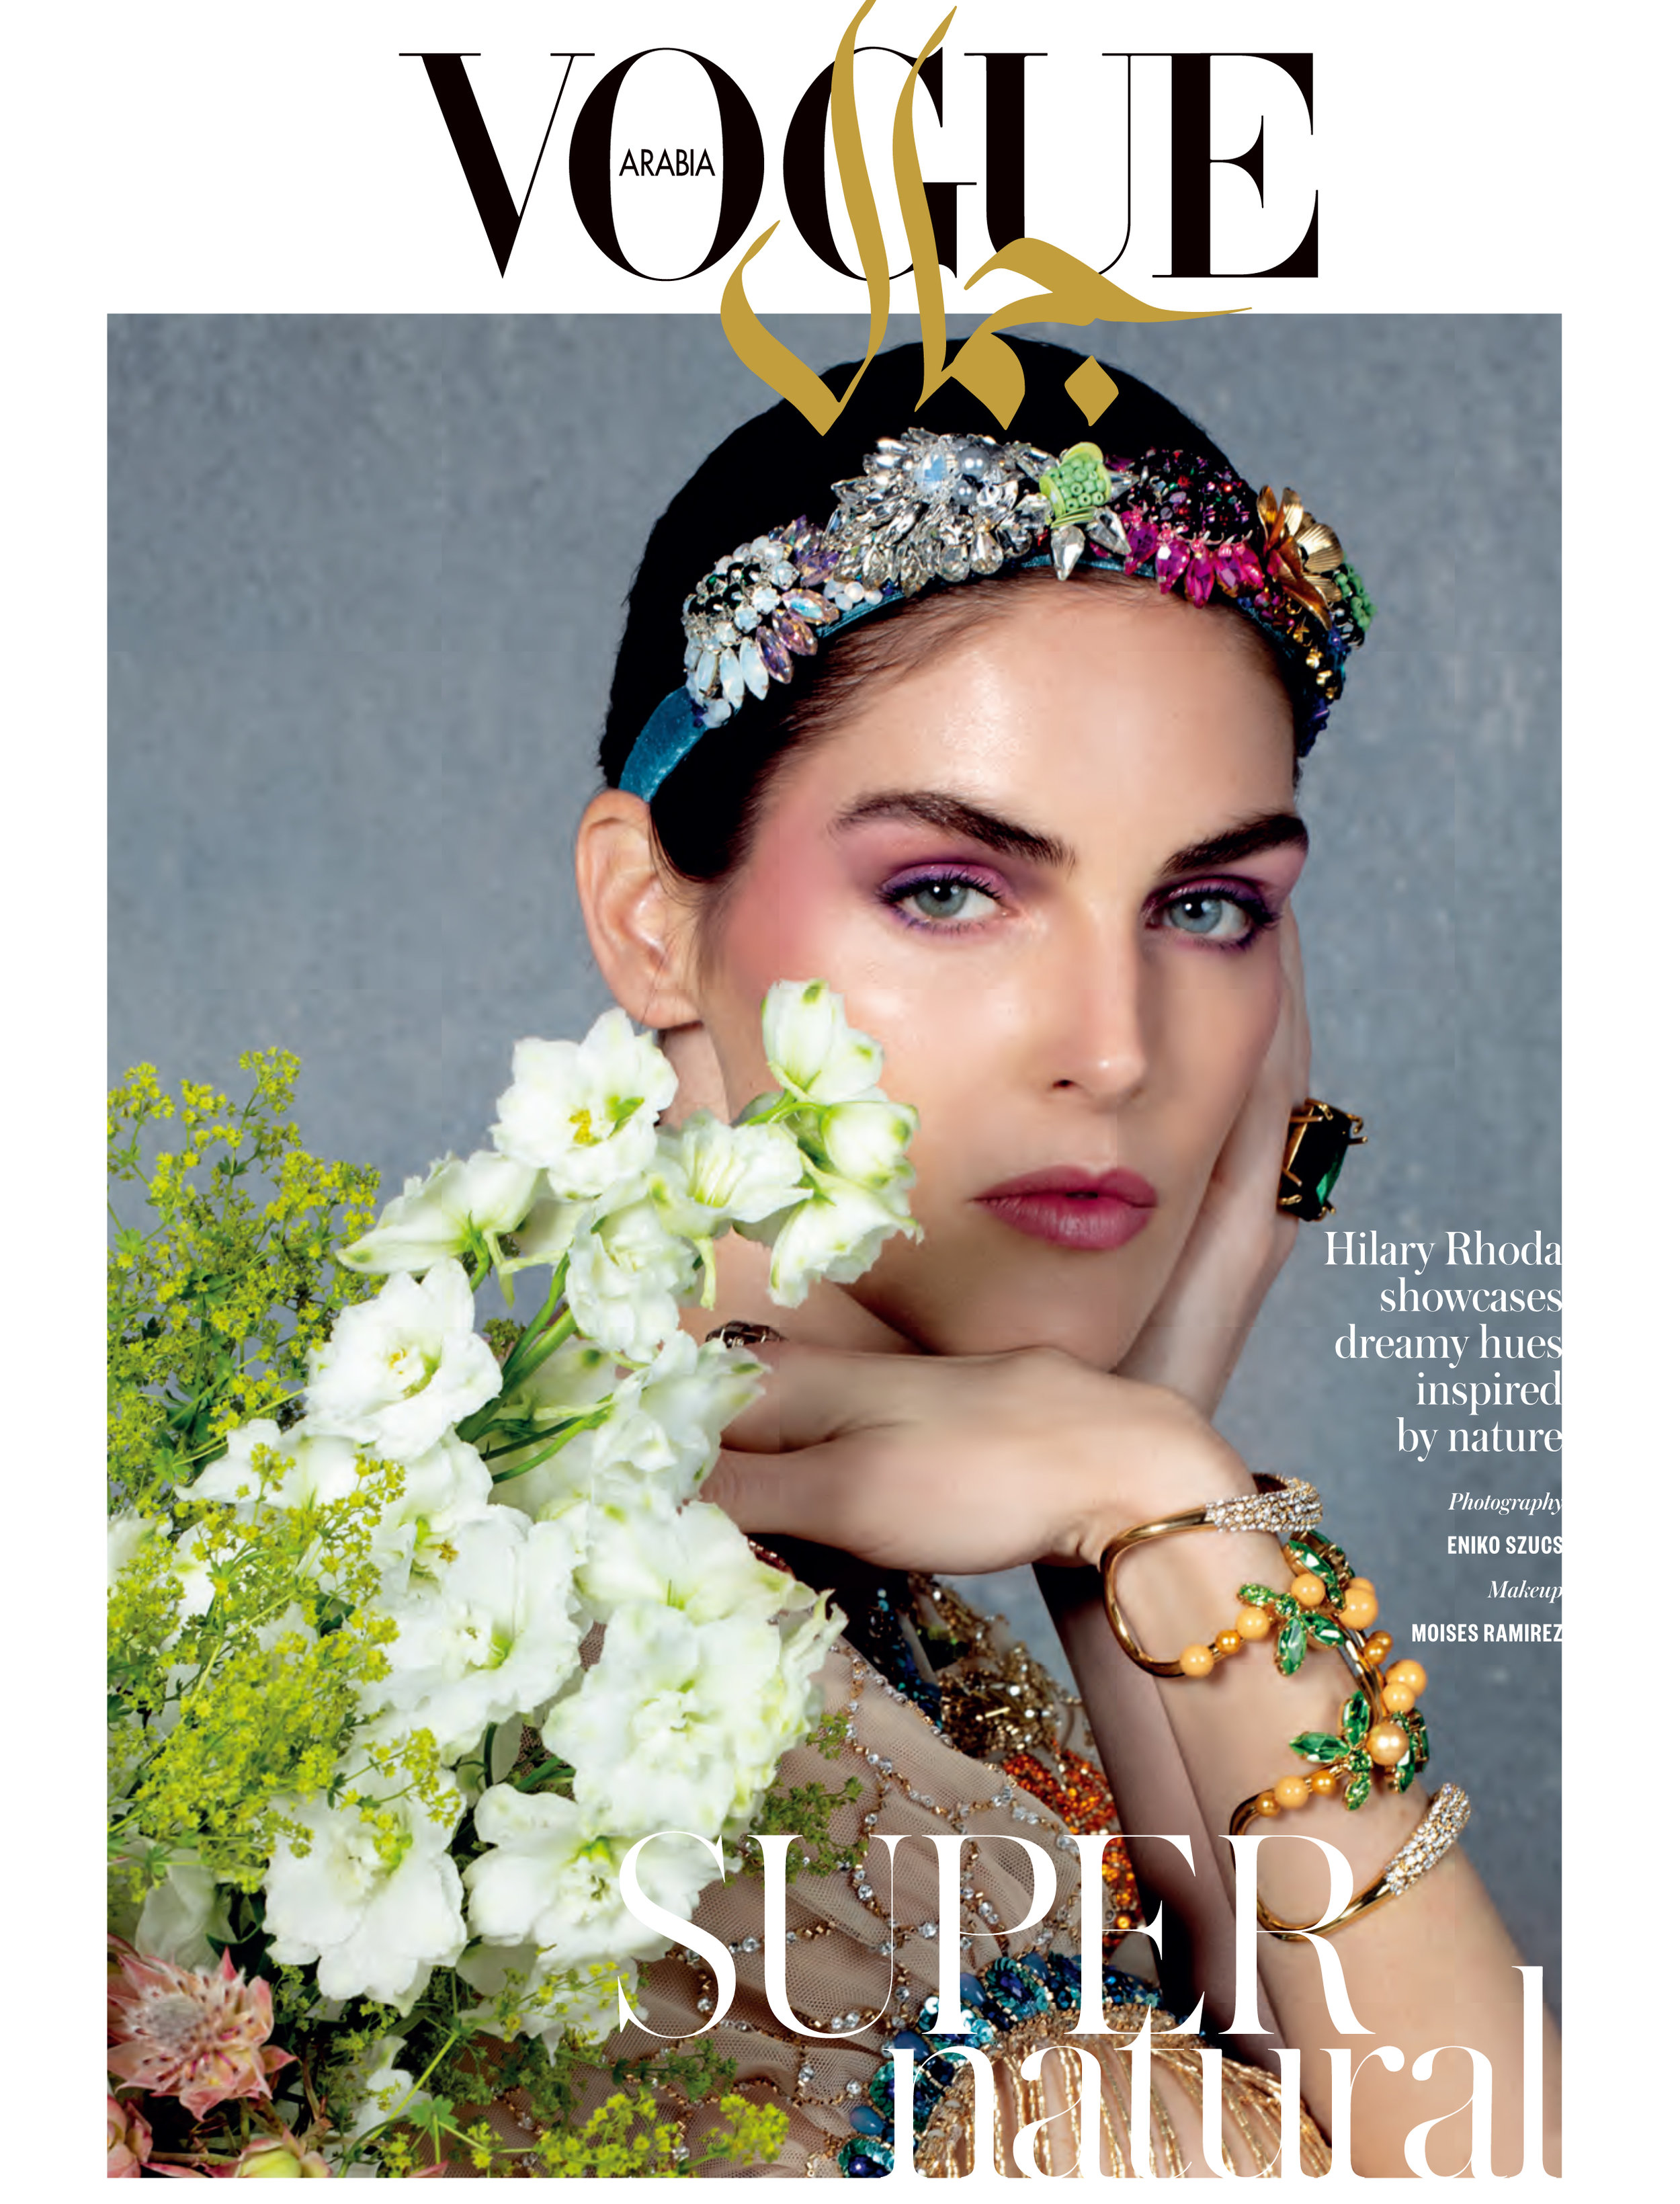 Vogue Arabia 1 19 web1.jpg